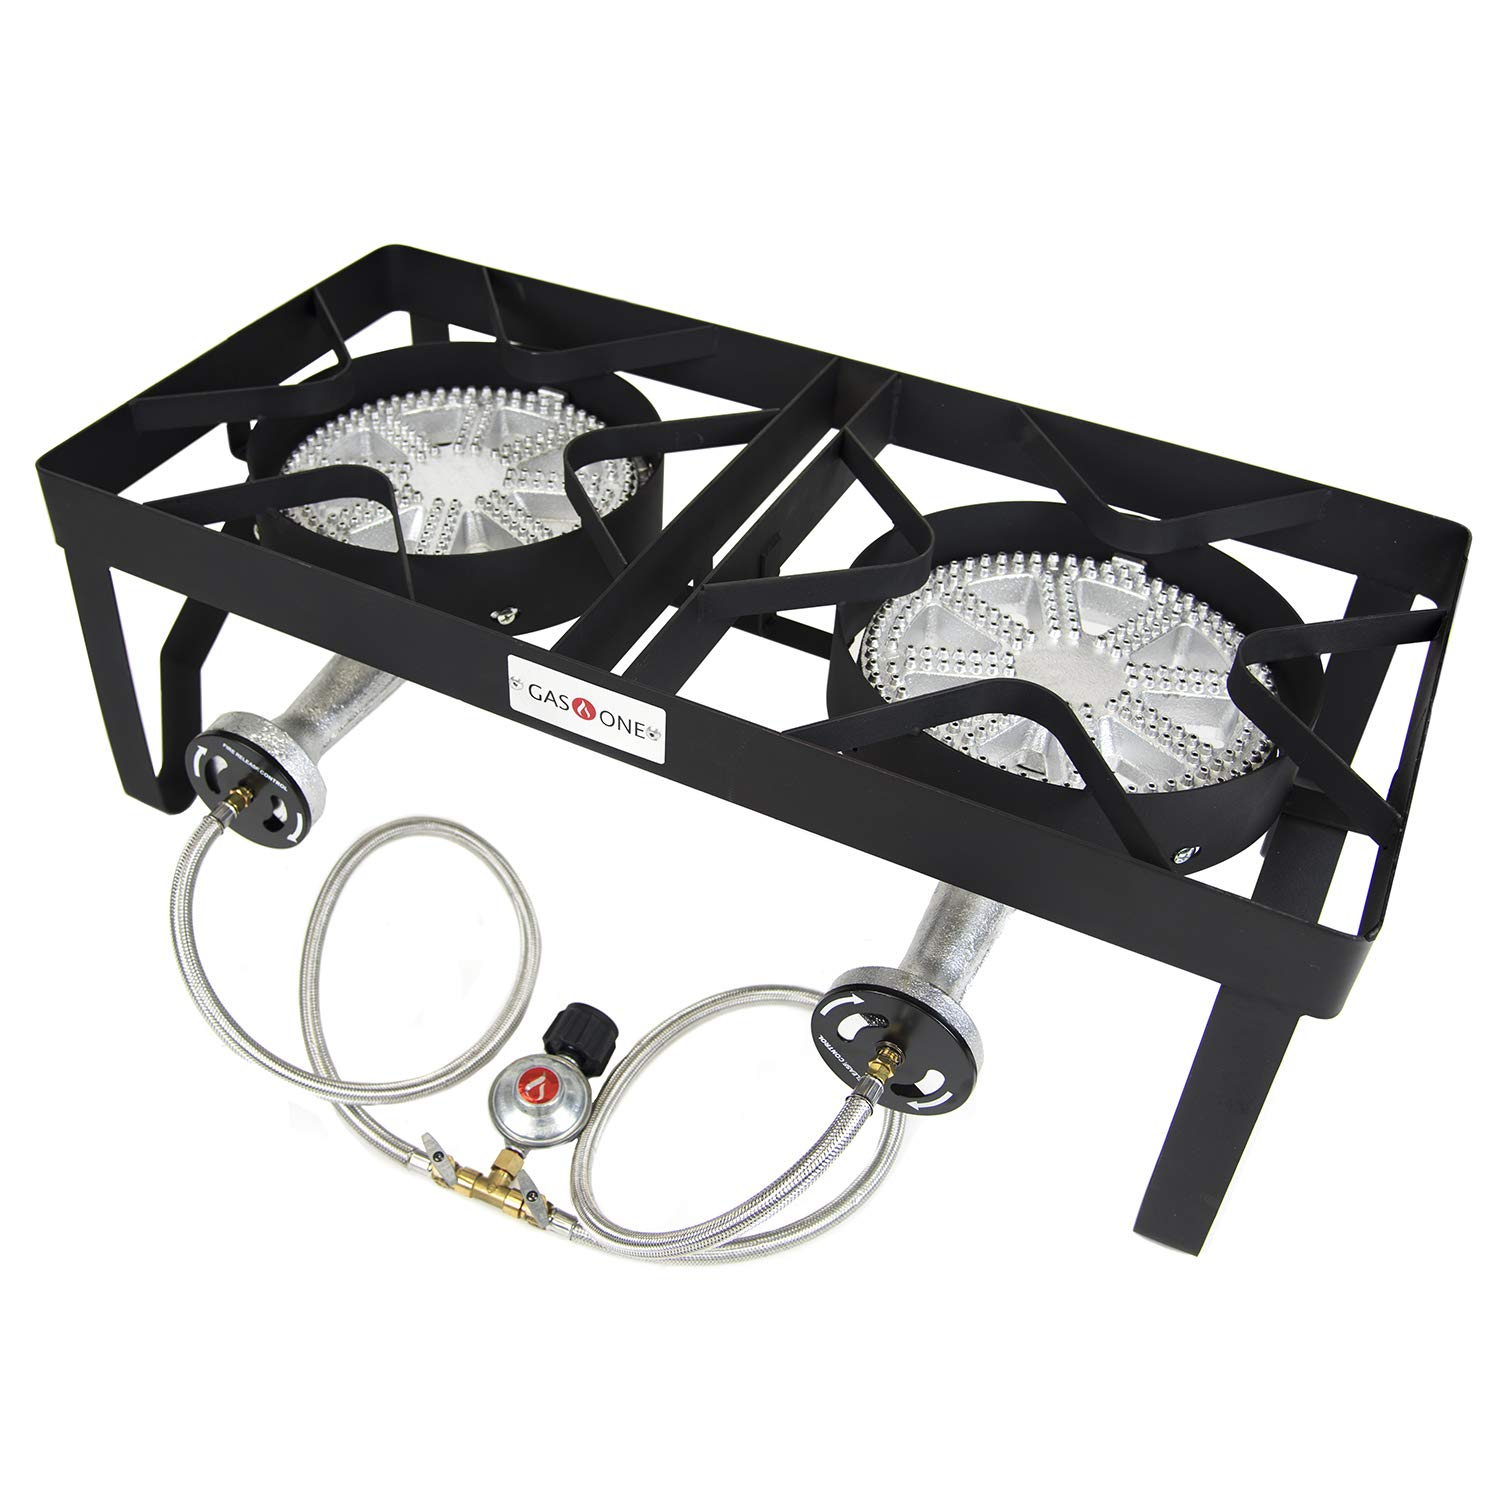 GasOne 380,000 BTU Propane Burner Heavy Duty Double Burner Outdoor Stove Propane Gas Cooker with Adjustable Regulator & Steel Braided Great for Home Brewing, Turkey Fry, Maple Syrup - Patent Pending